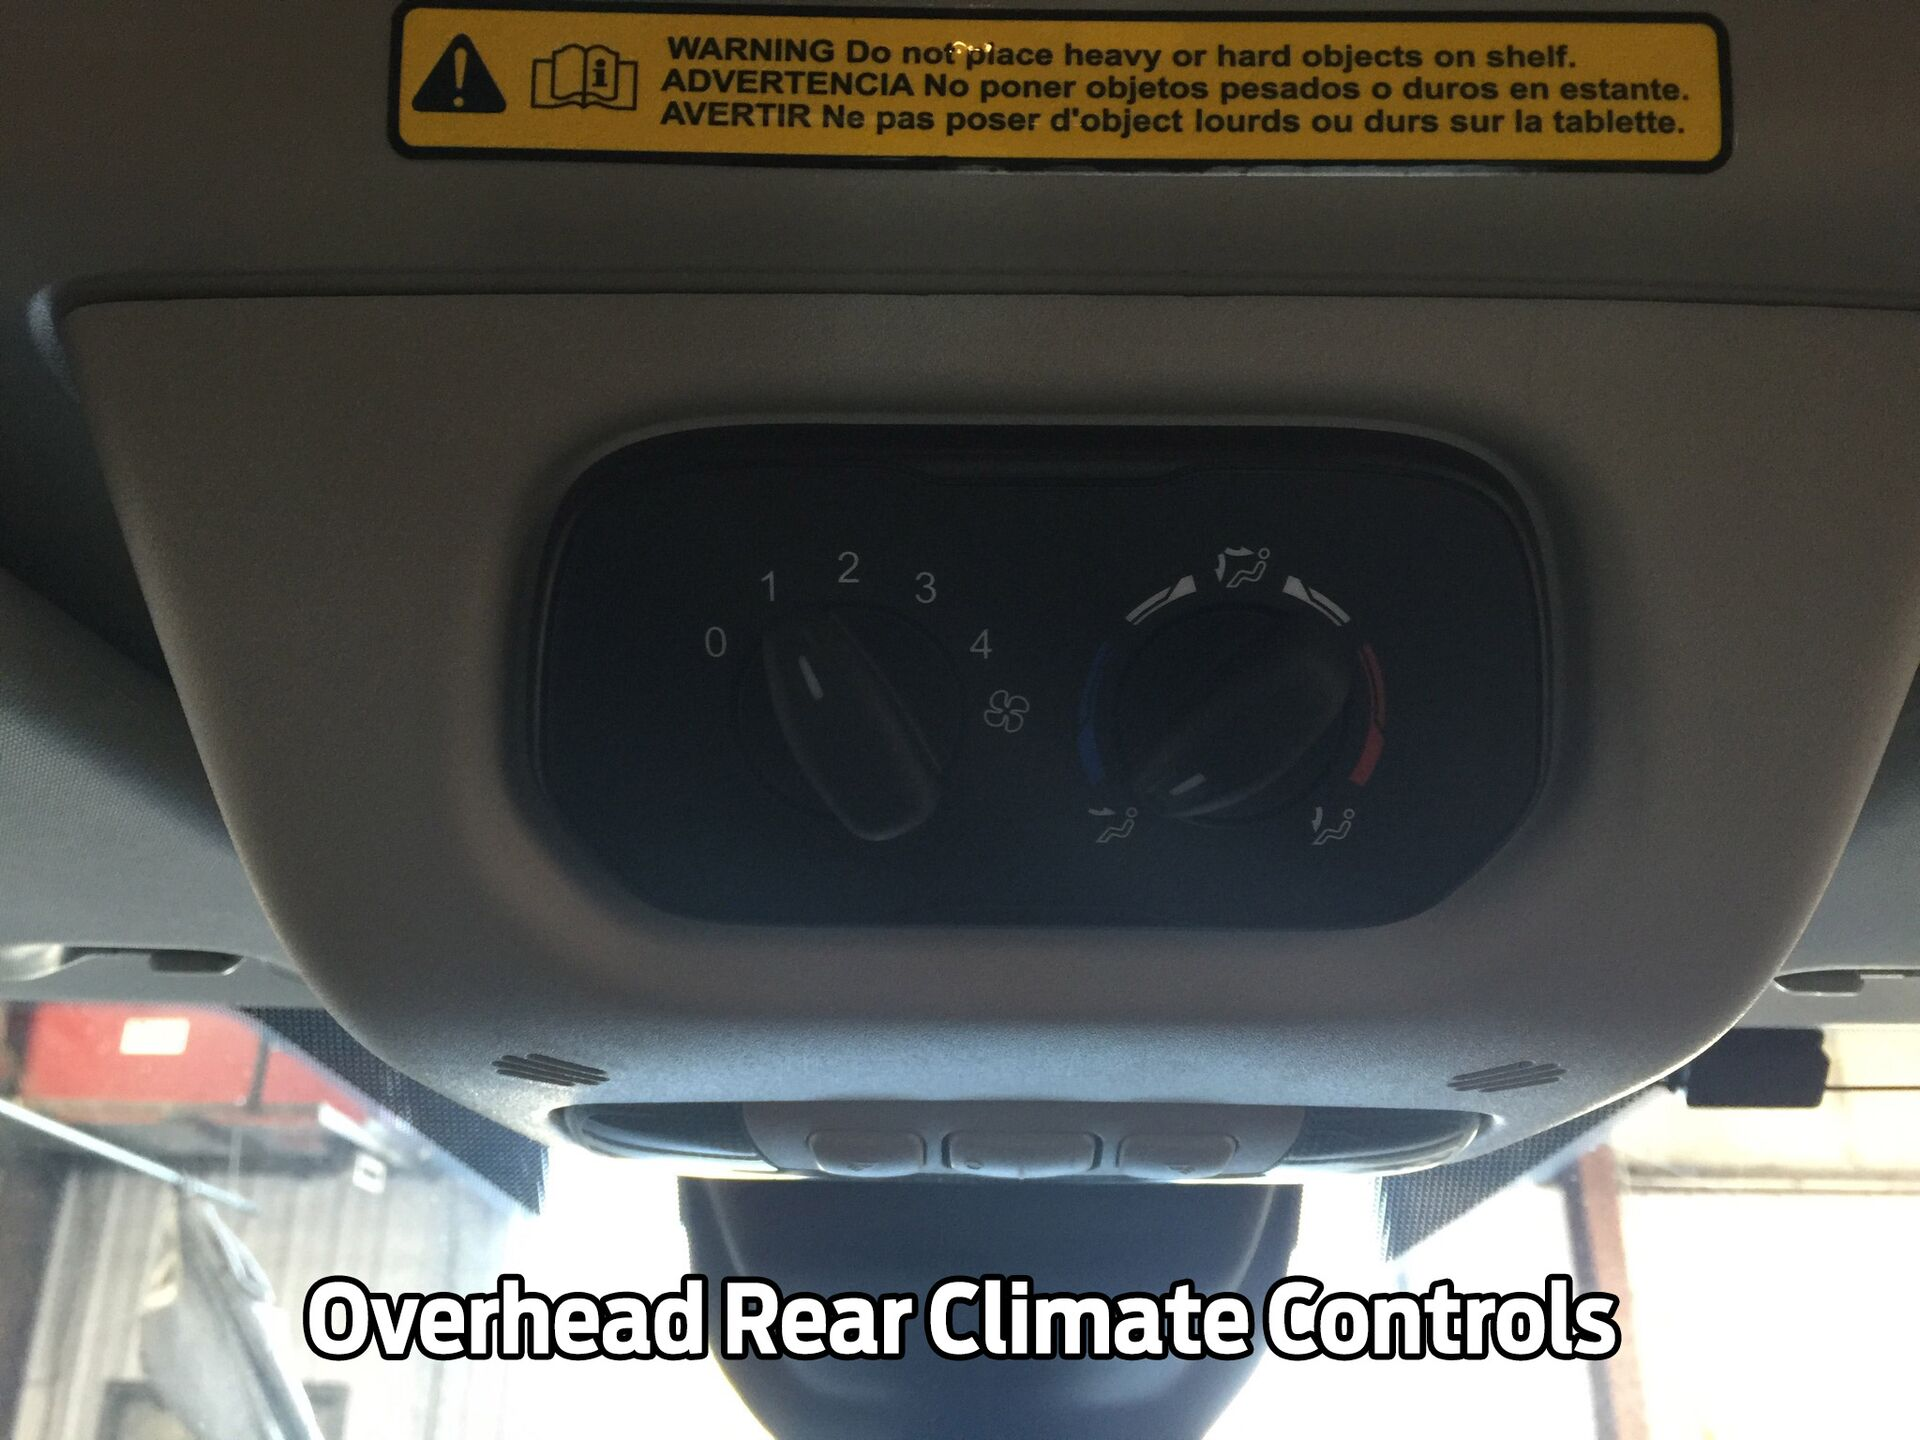 Overhead Rear Climate Controls